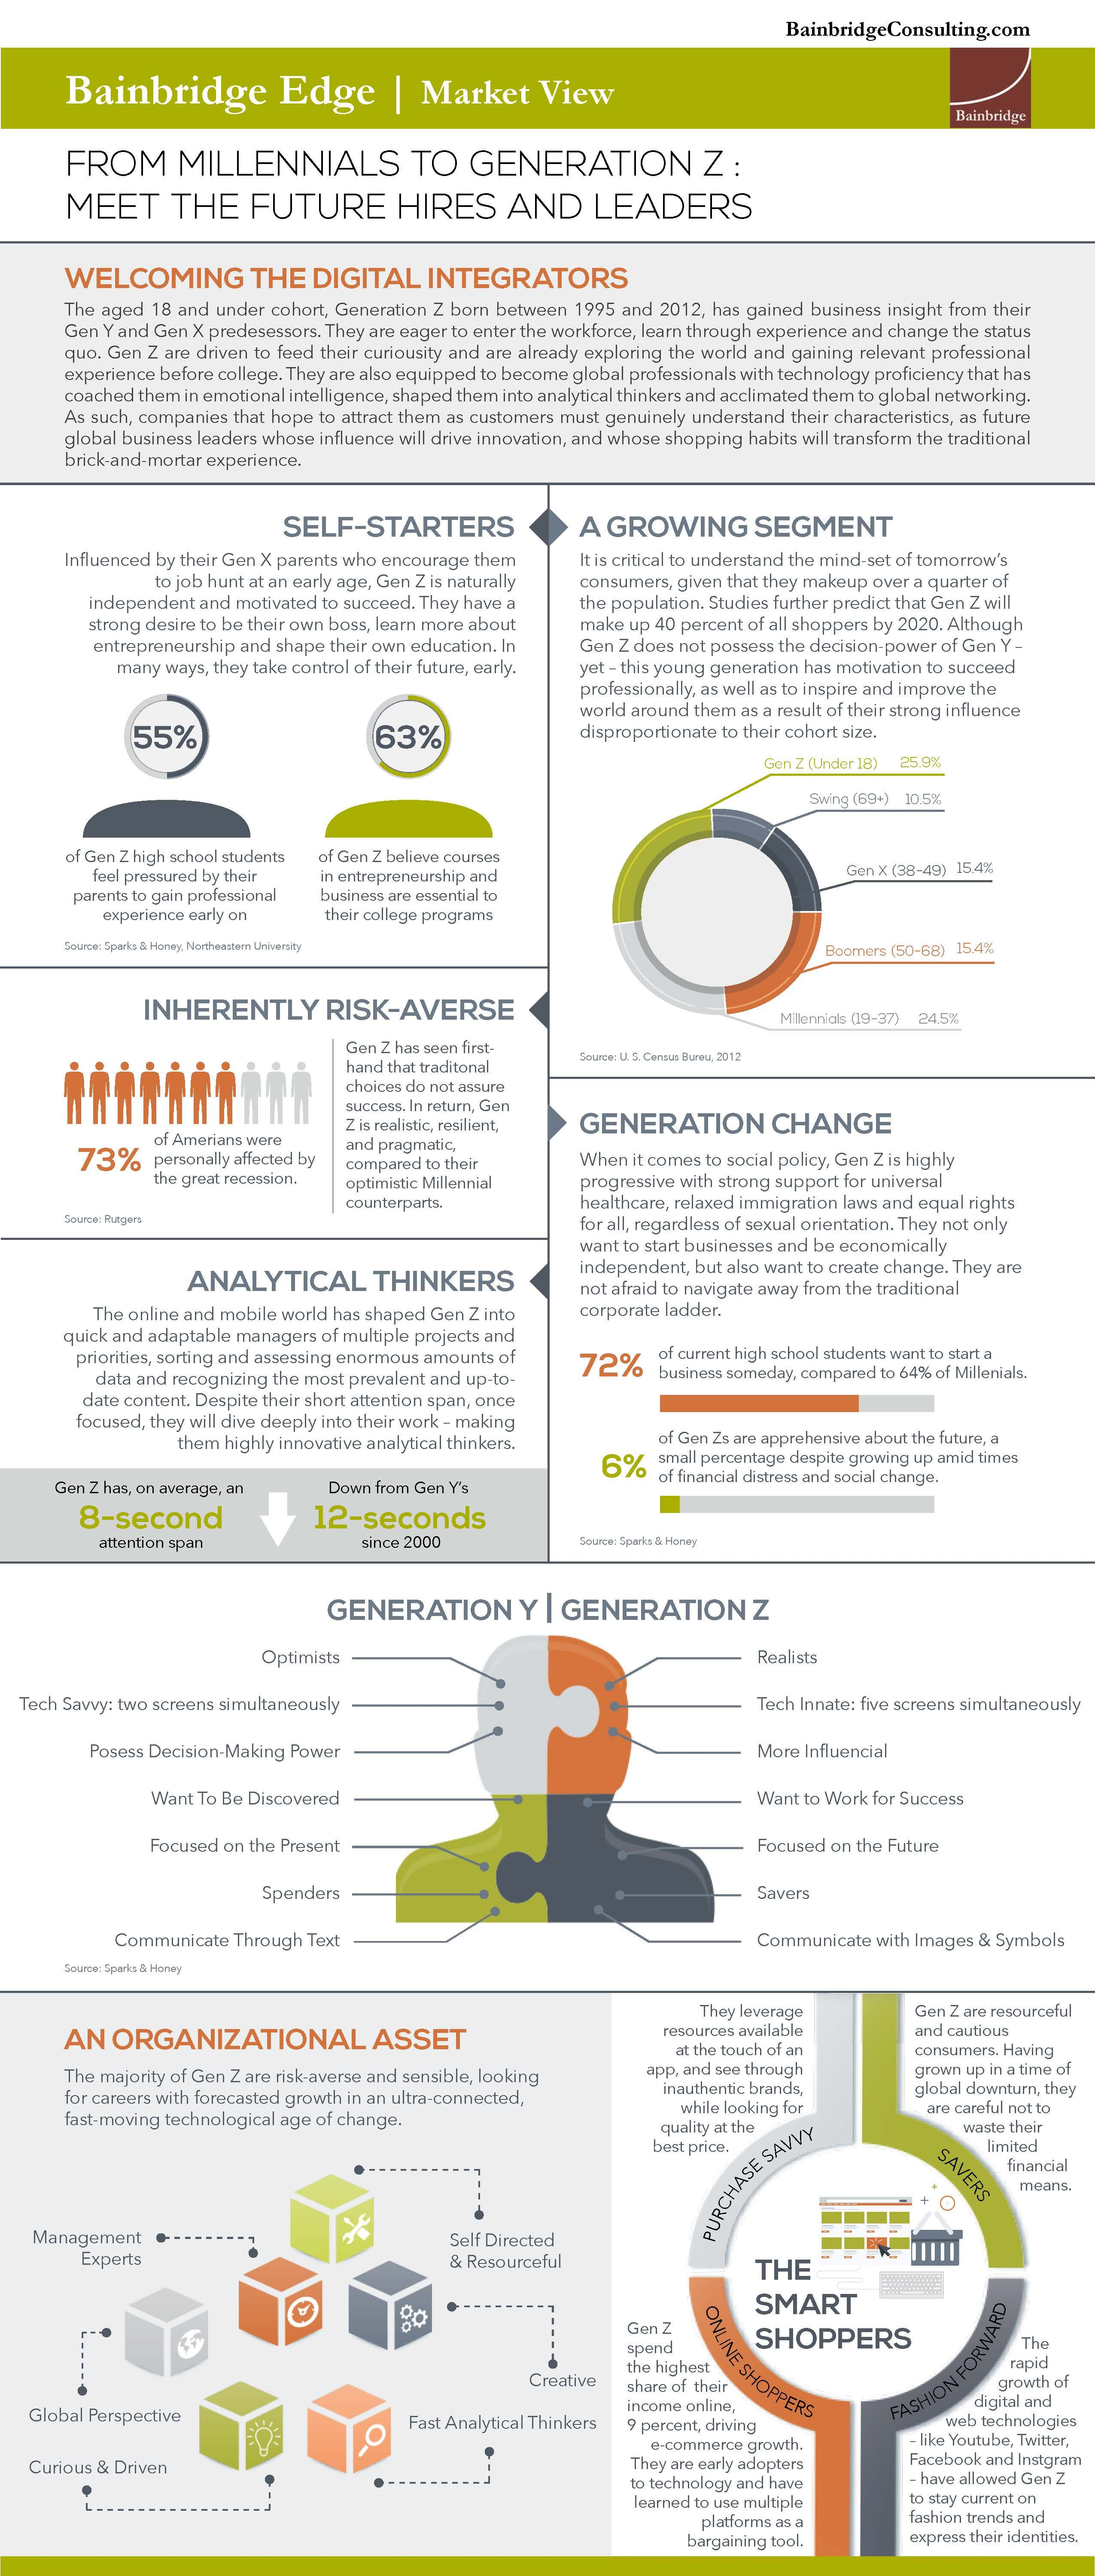 From Millennials To Generation Z Meet The Future Hires And Leaders Bainbridge Consulting Generation Z Gen Z Characteristics Generation